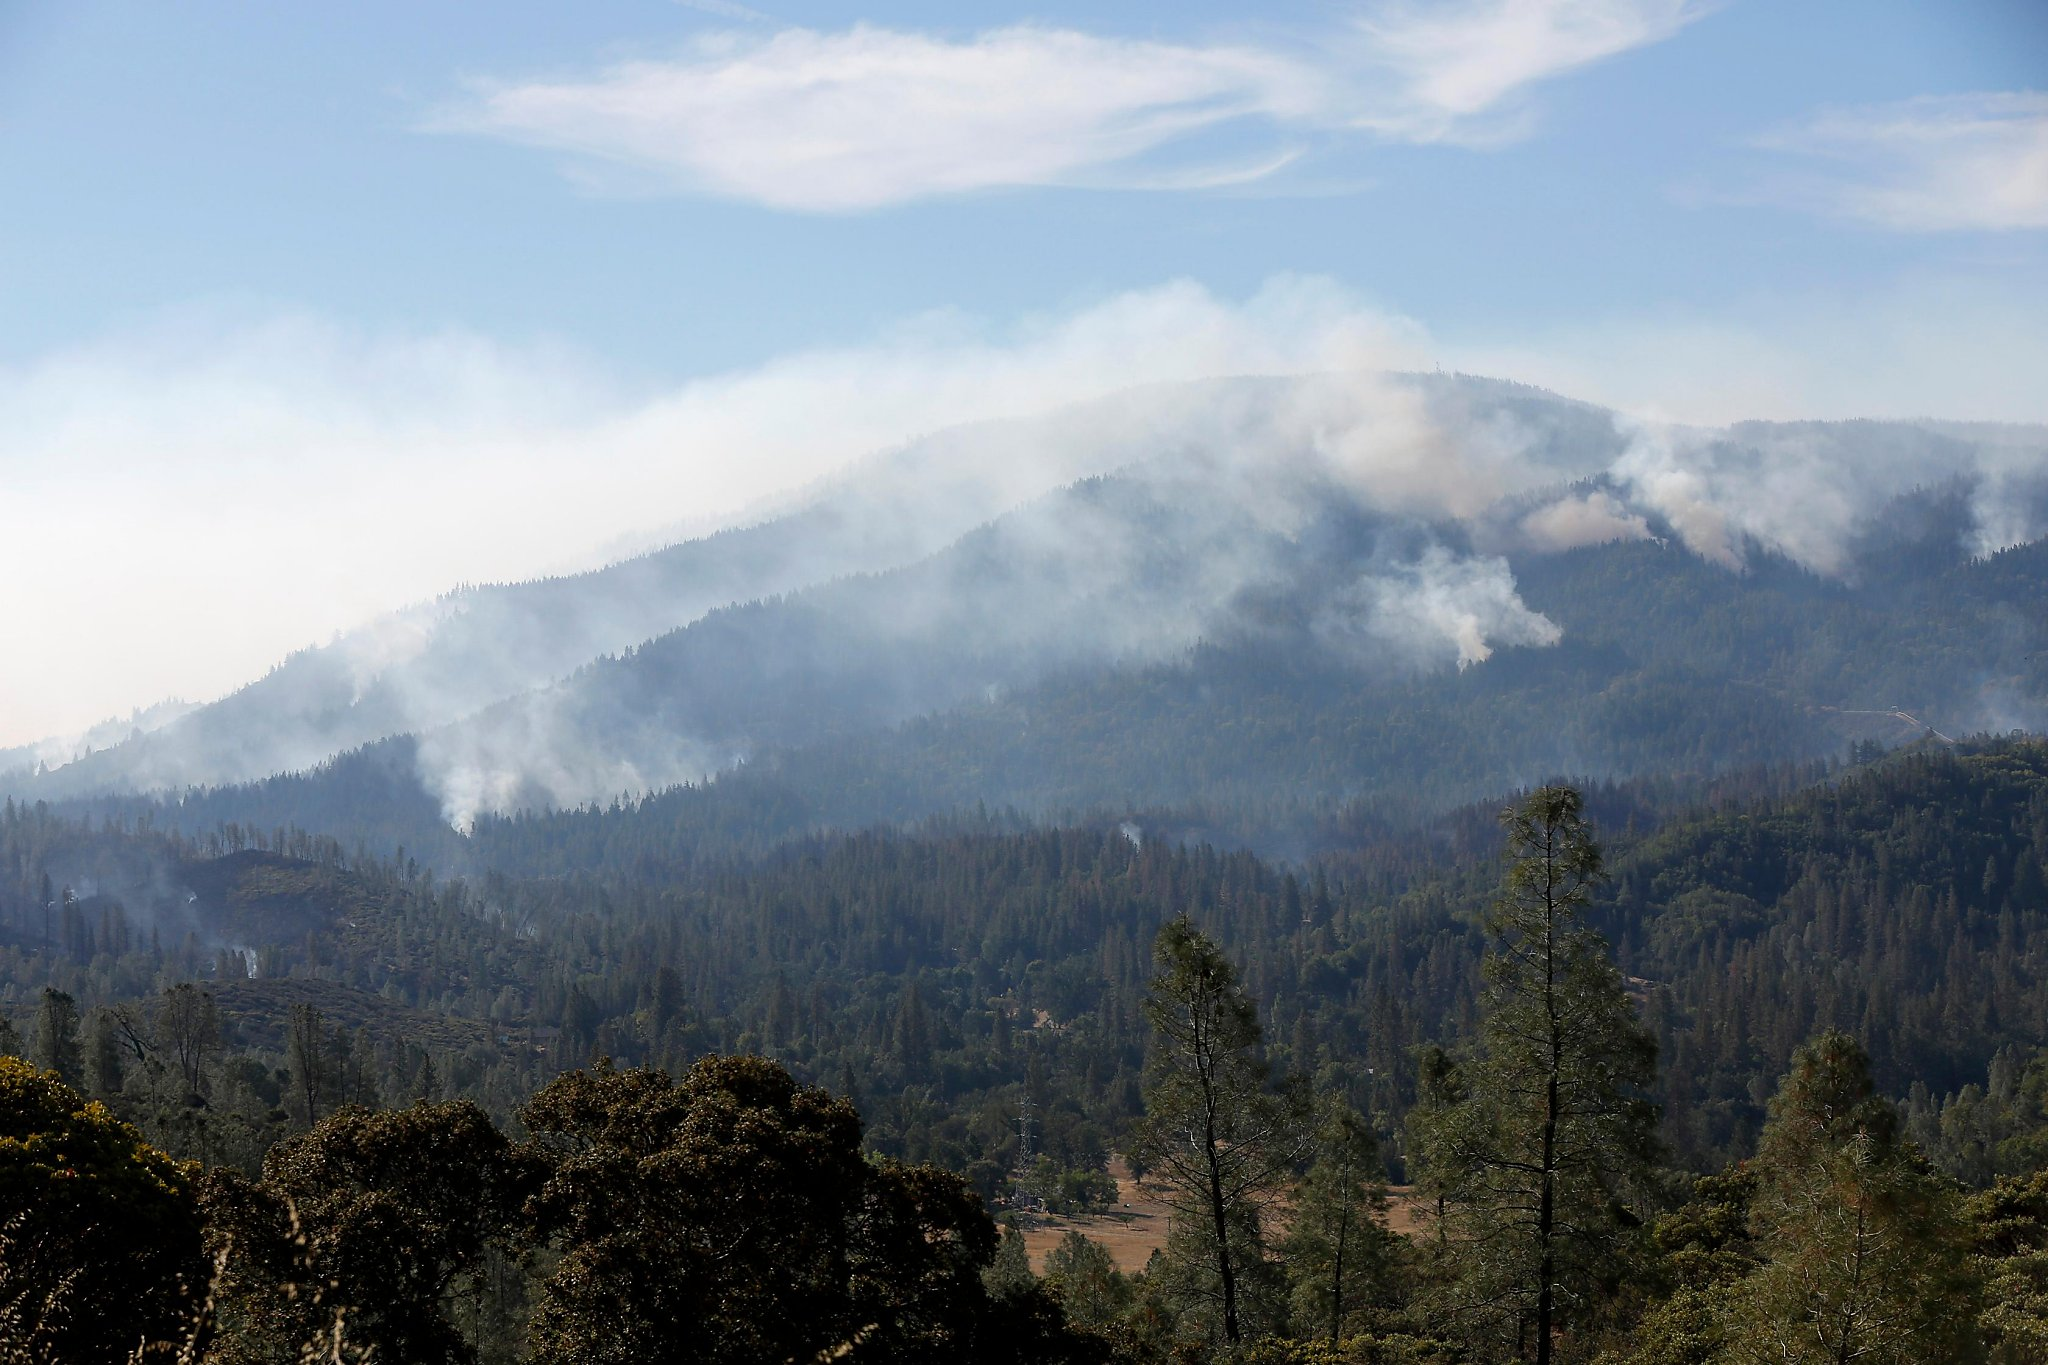 Smoke from recent California wildfires increased risk of cardiac arrest 70%, study shows